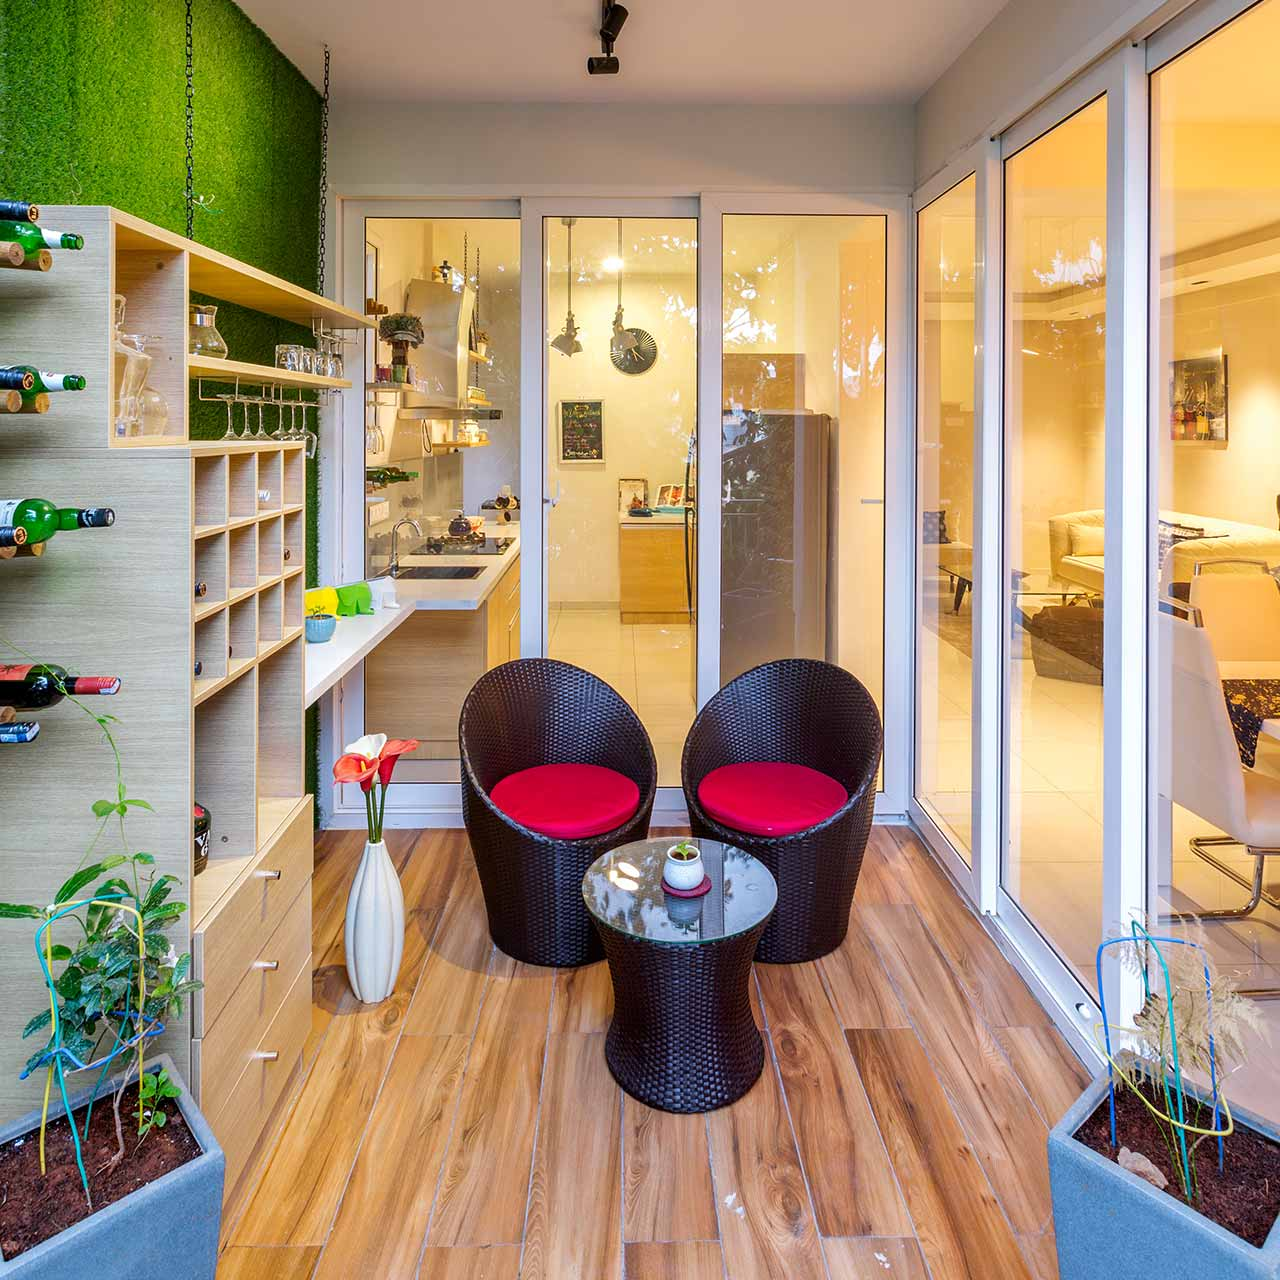 Clever Design Is All About Functional Interiors